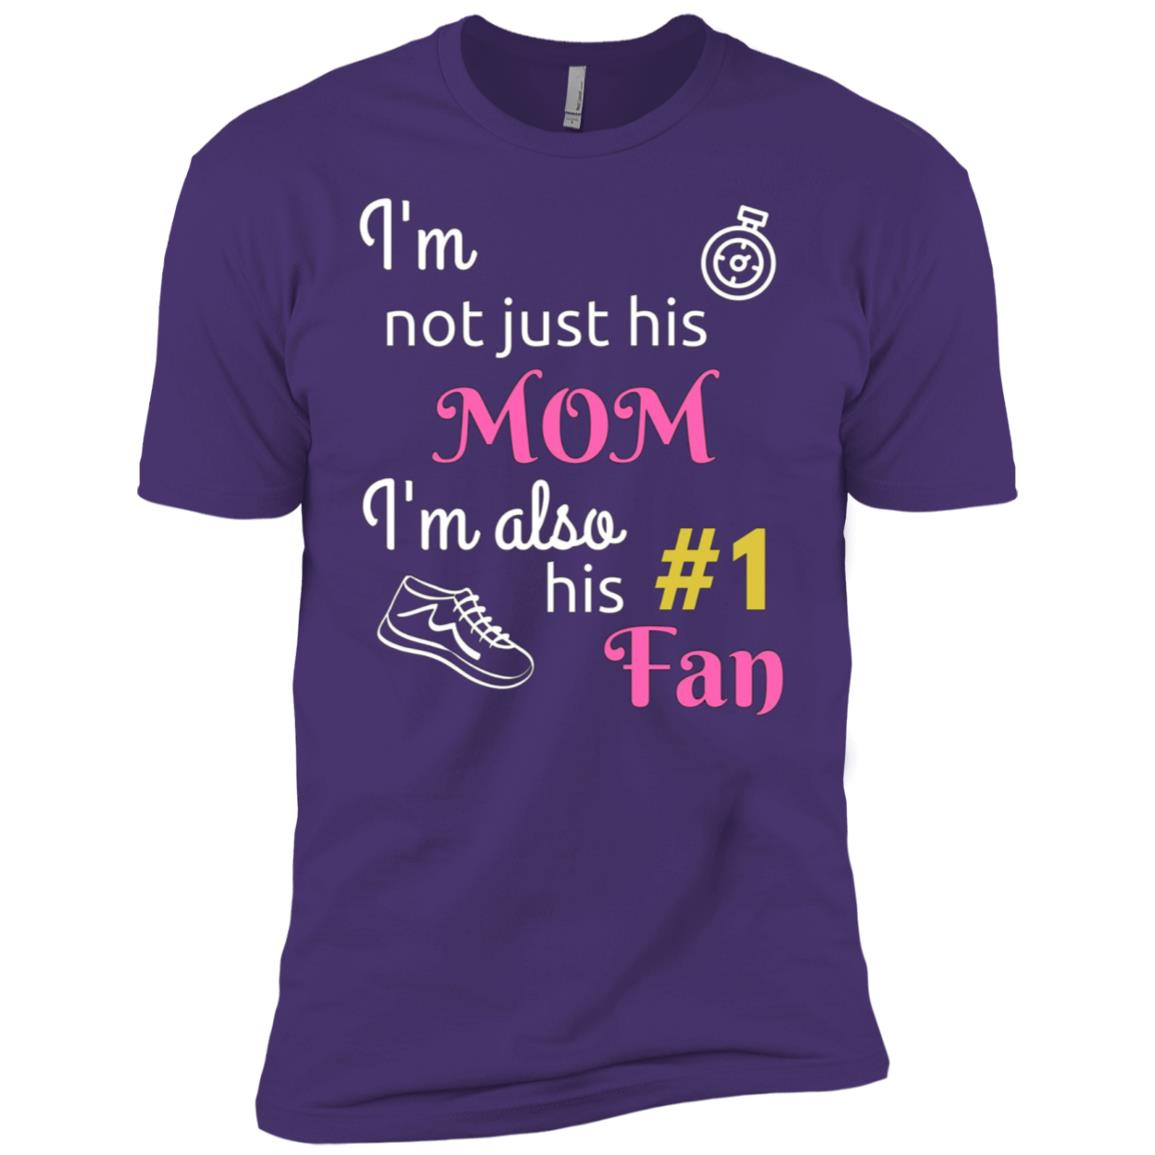 I'm not just his Mom but number 1 fan cross country Men Short Sleeve T-Shirt